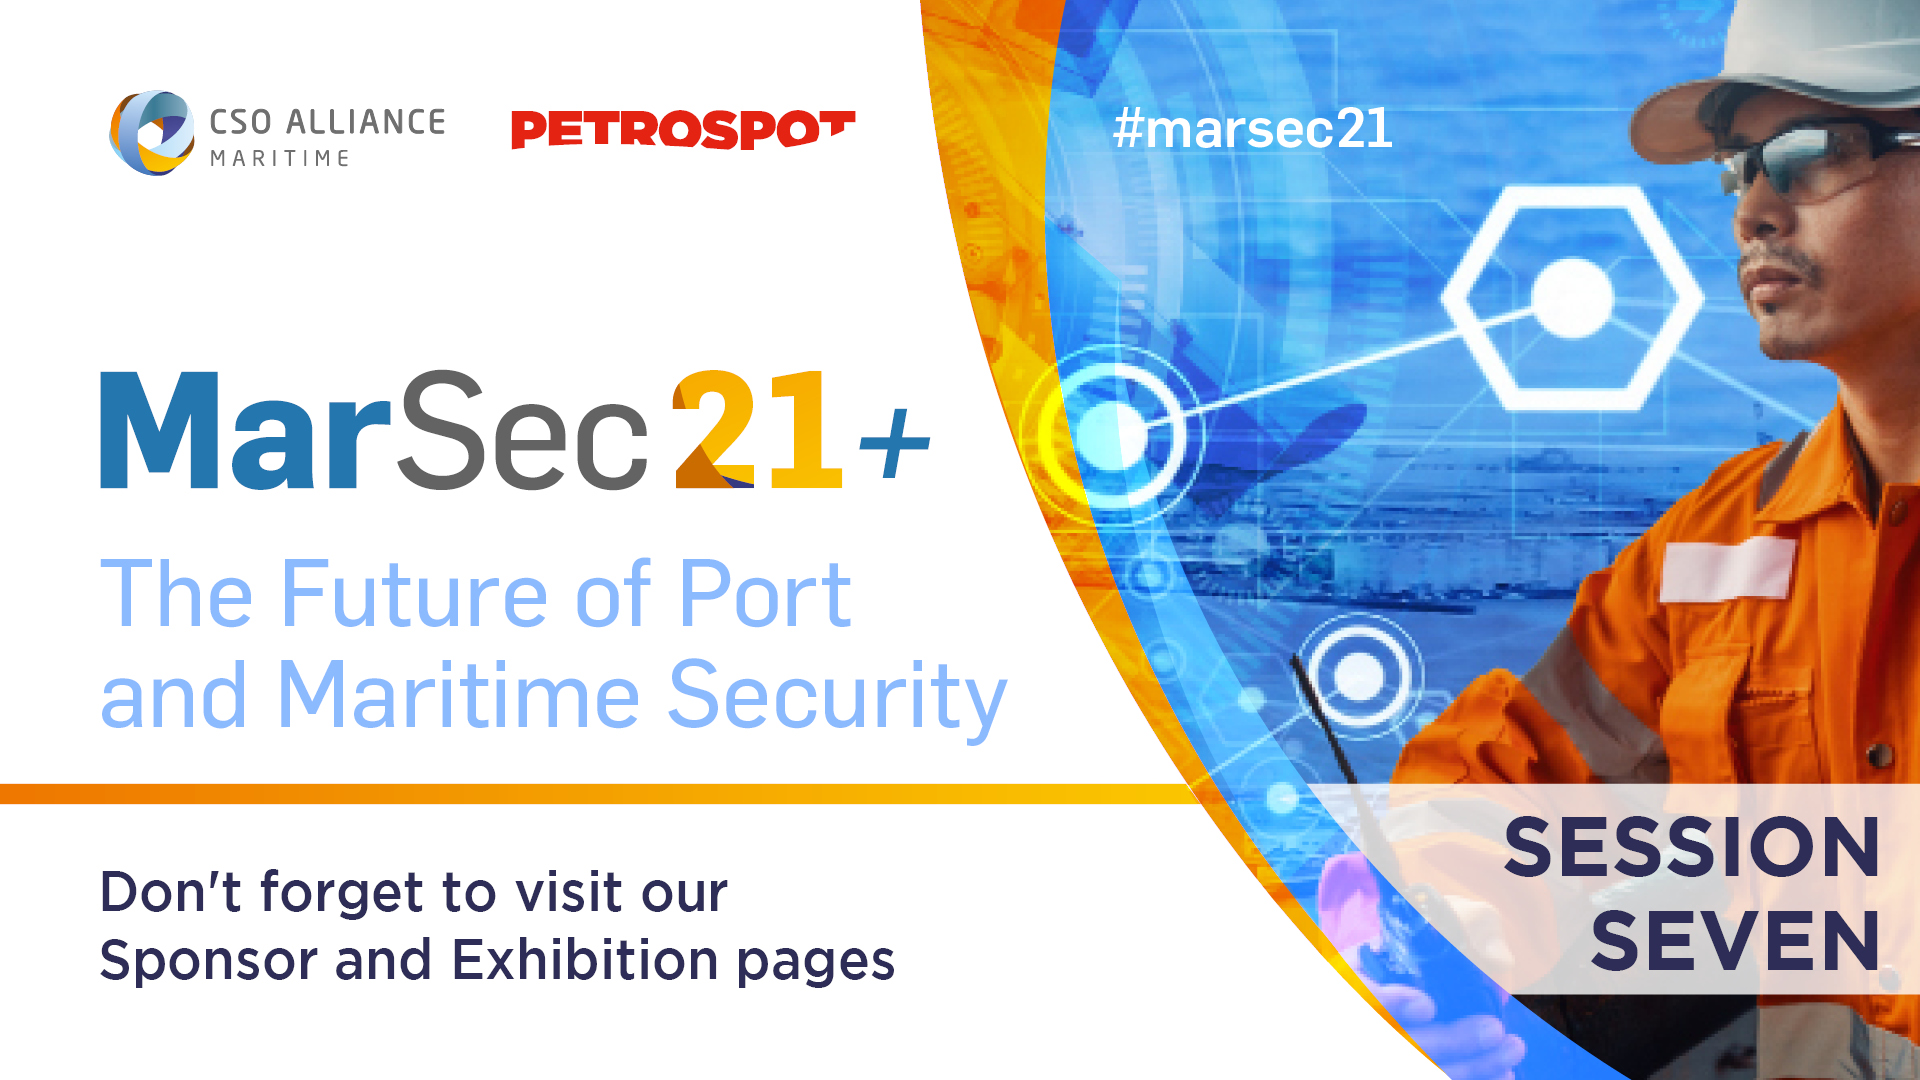 MarSec 21+ Session 7: Digital Transformation to the Cloud - identifying the risks and maximising the opportunities